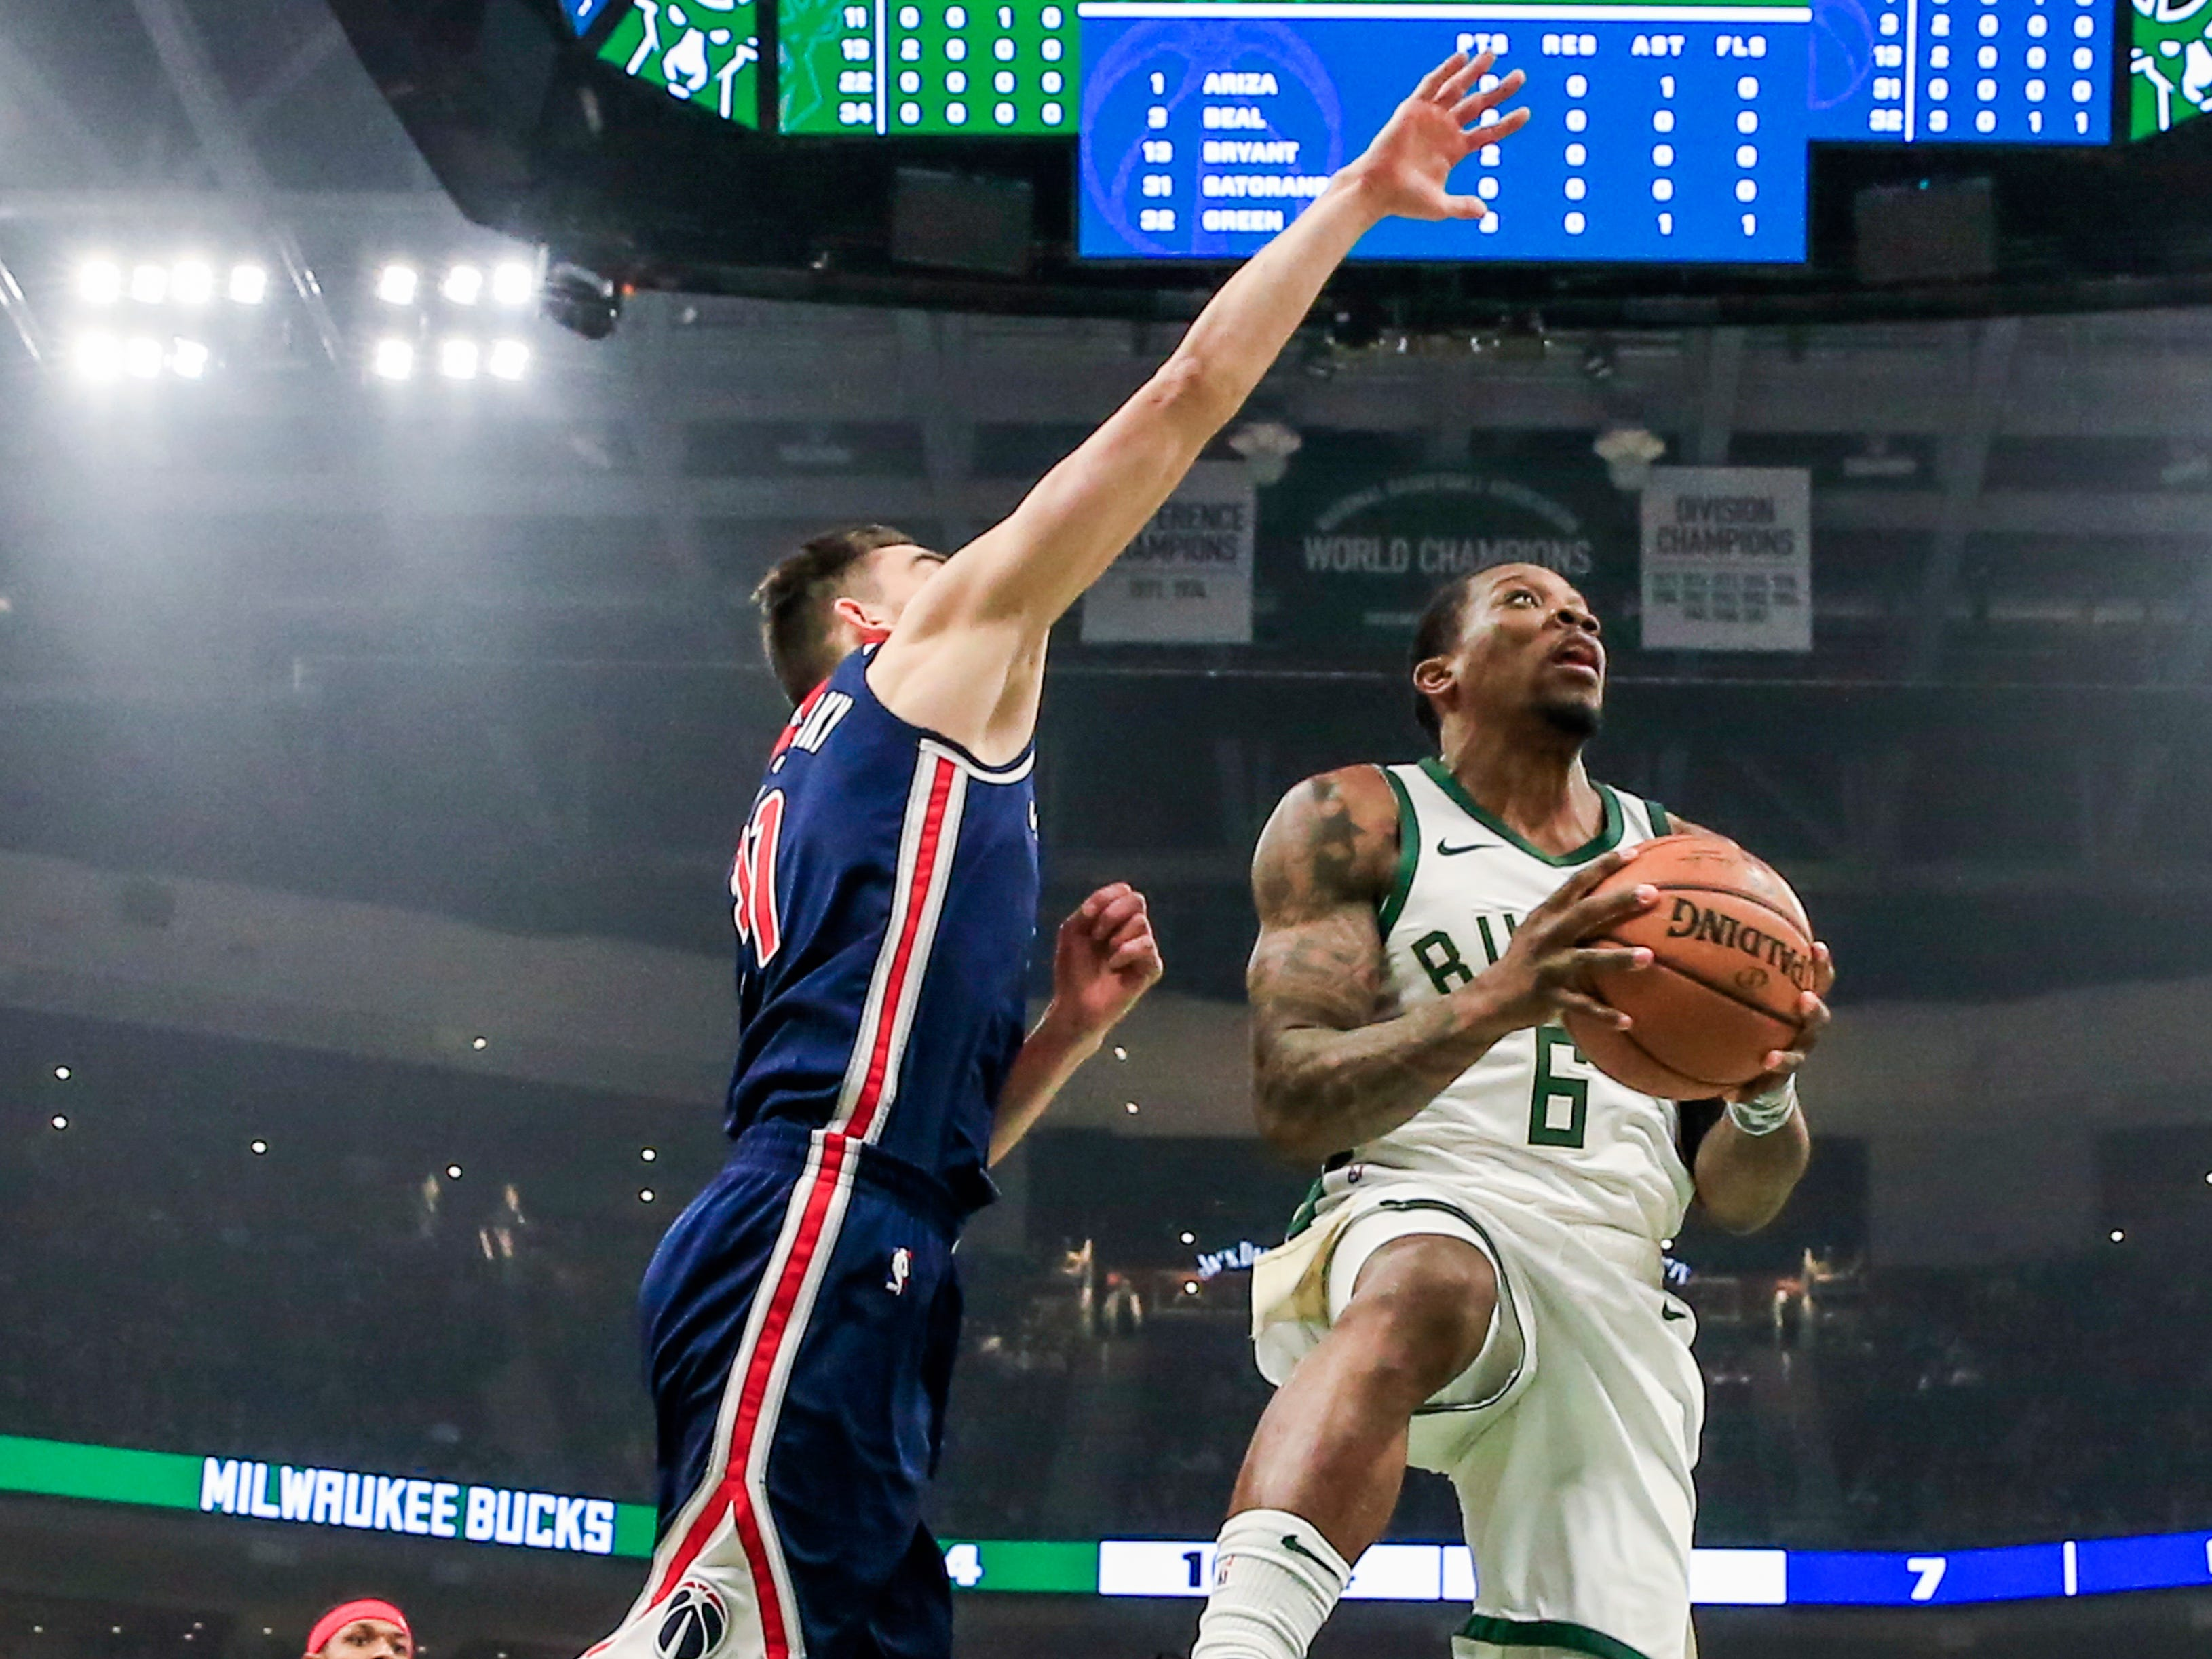 Bucks guard Eric Bledsoe gets under the outstretched arm of the Wizards' Tomas Satoransky as he goes in for a shot down low during the first half Wednesday.